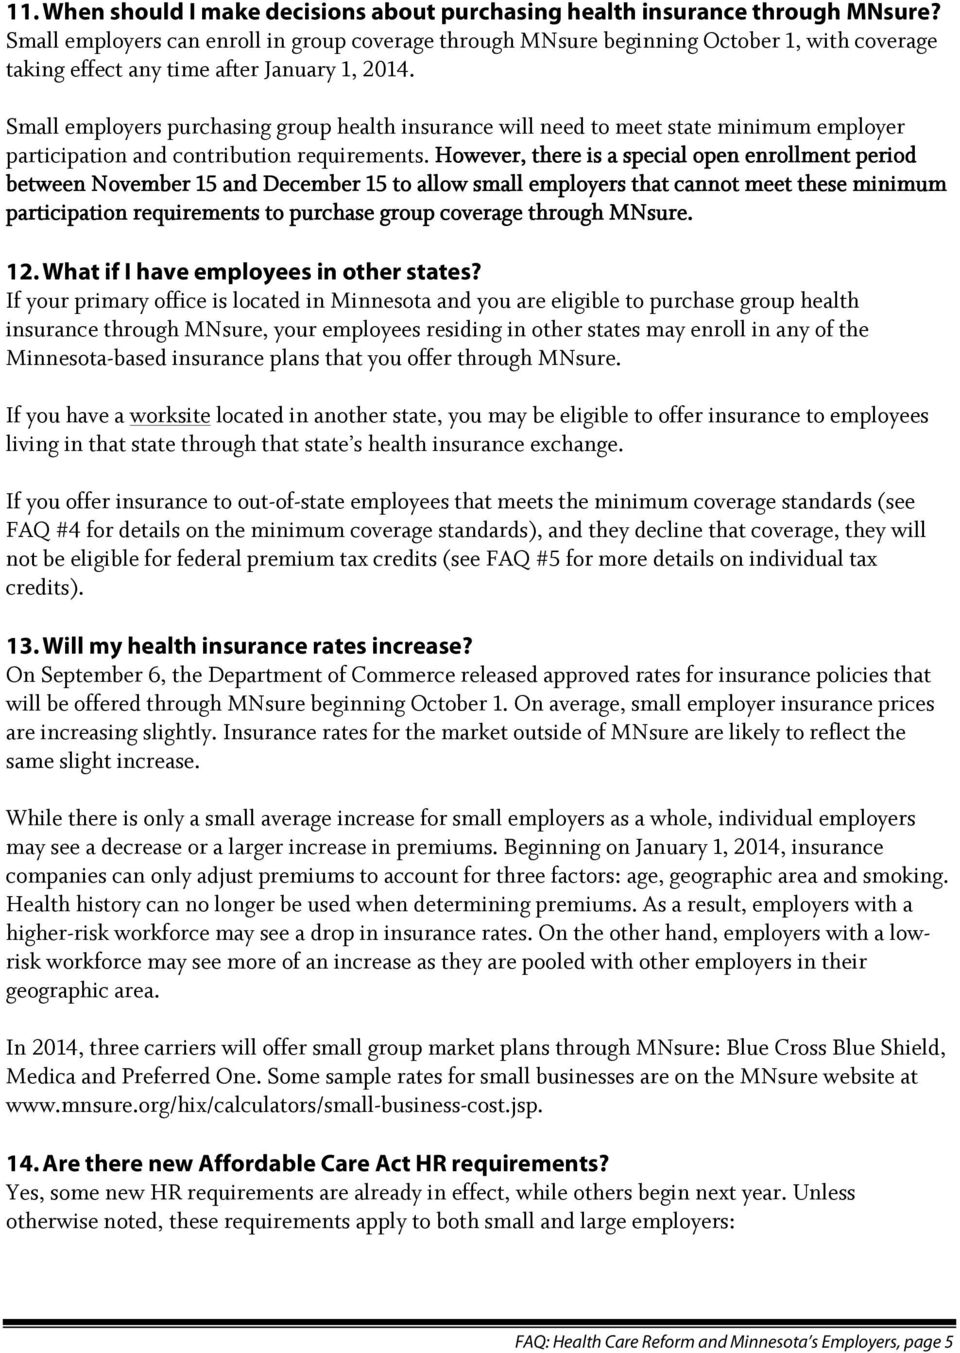 Small employers purchasing group health insurance will need to meet state minimum employer participation and contribution requirements.